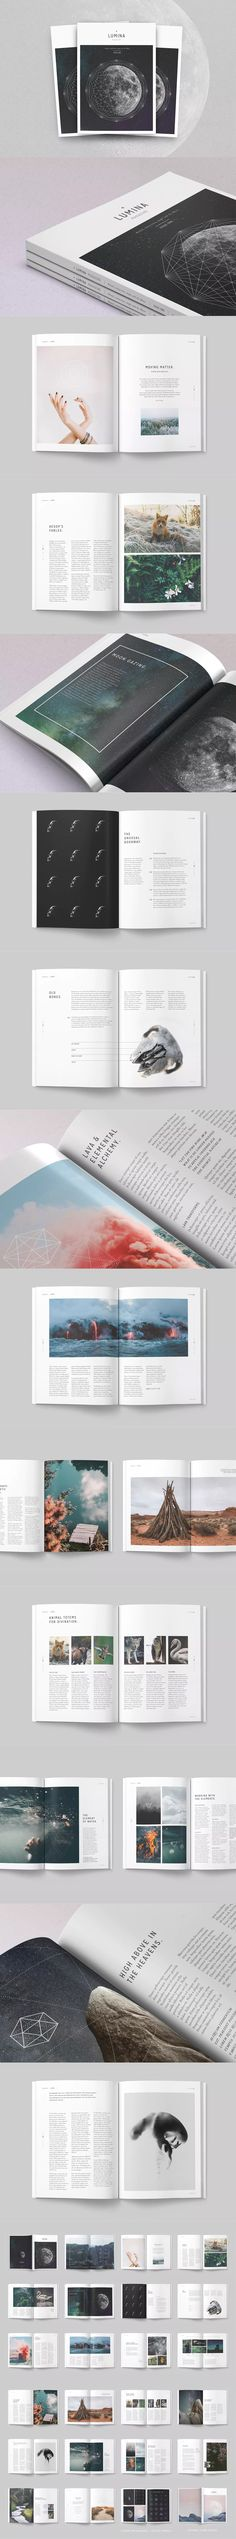 LUMINA Magazine Template InDesign INDD A4 and US Letter Size